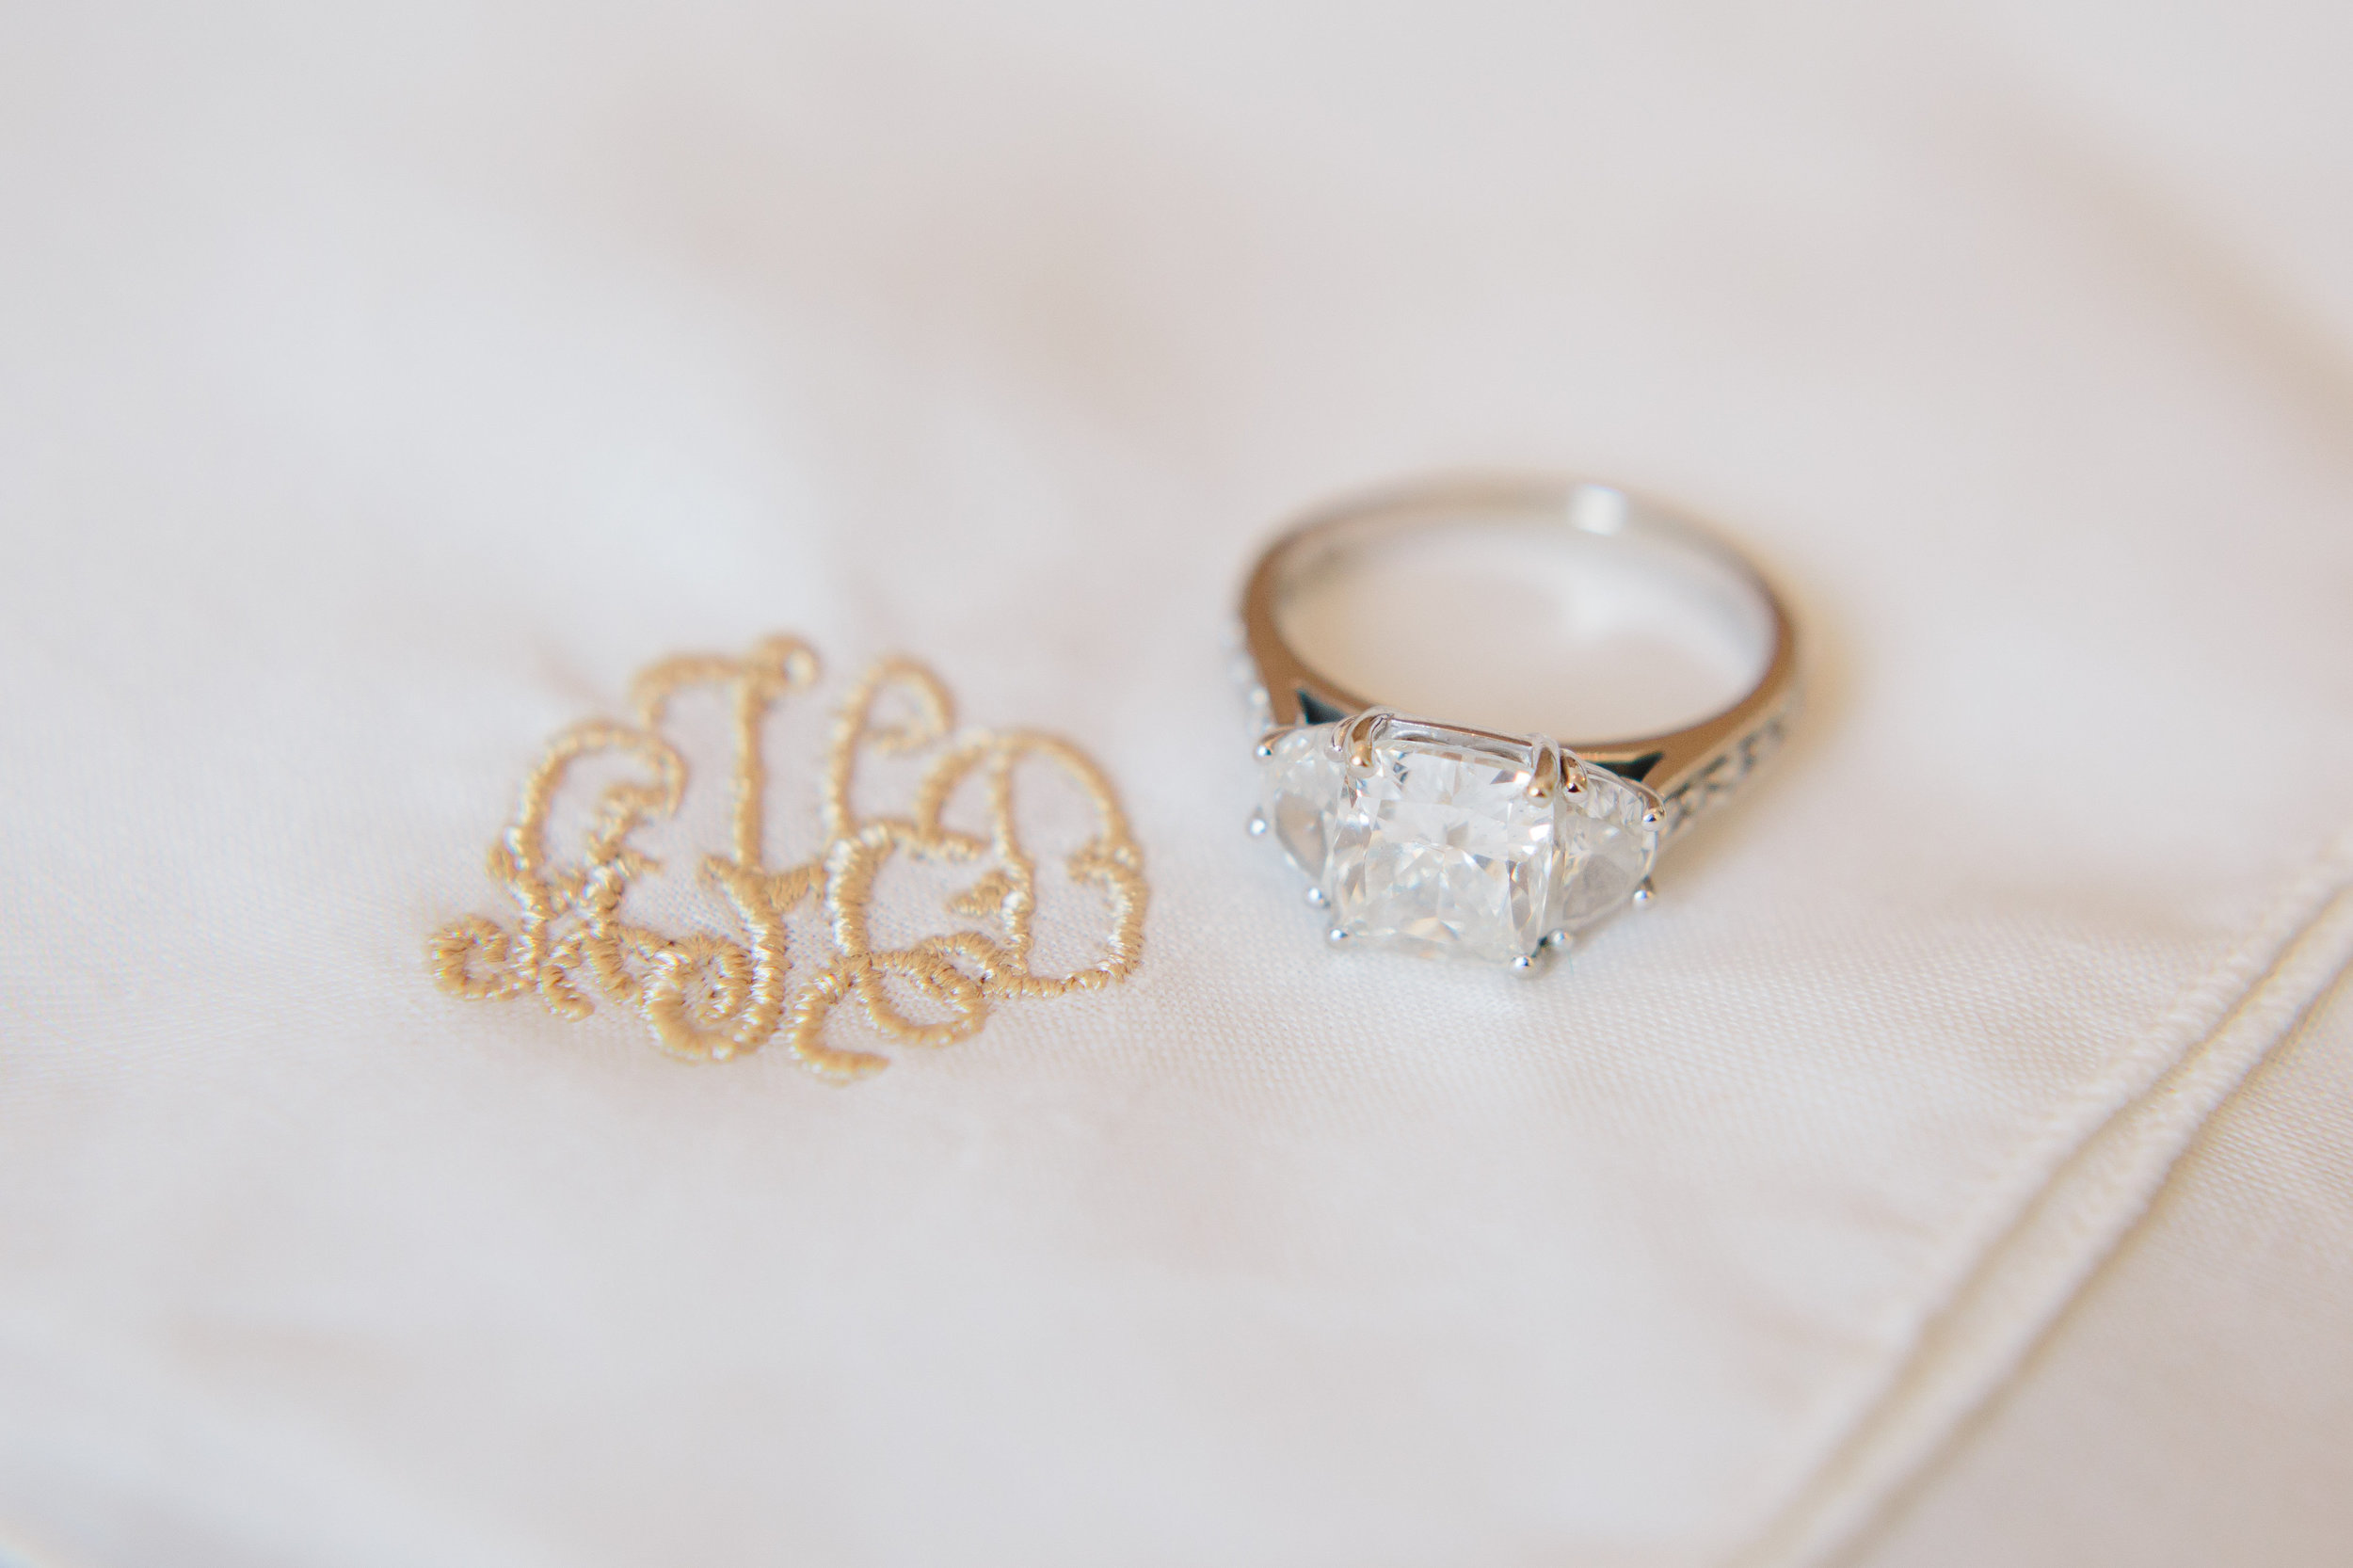 25818-embroideredhandkerchiefweddingringraleighwinterweddingembroideredhandkerchiefweddingringraleighwinterwedding.jpg